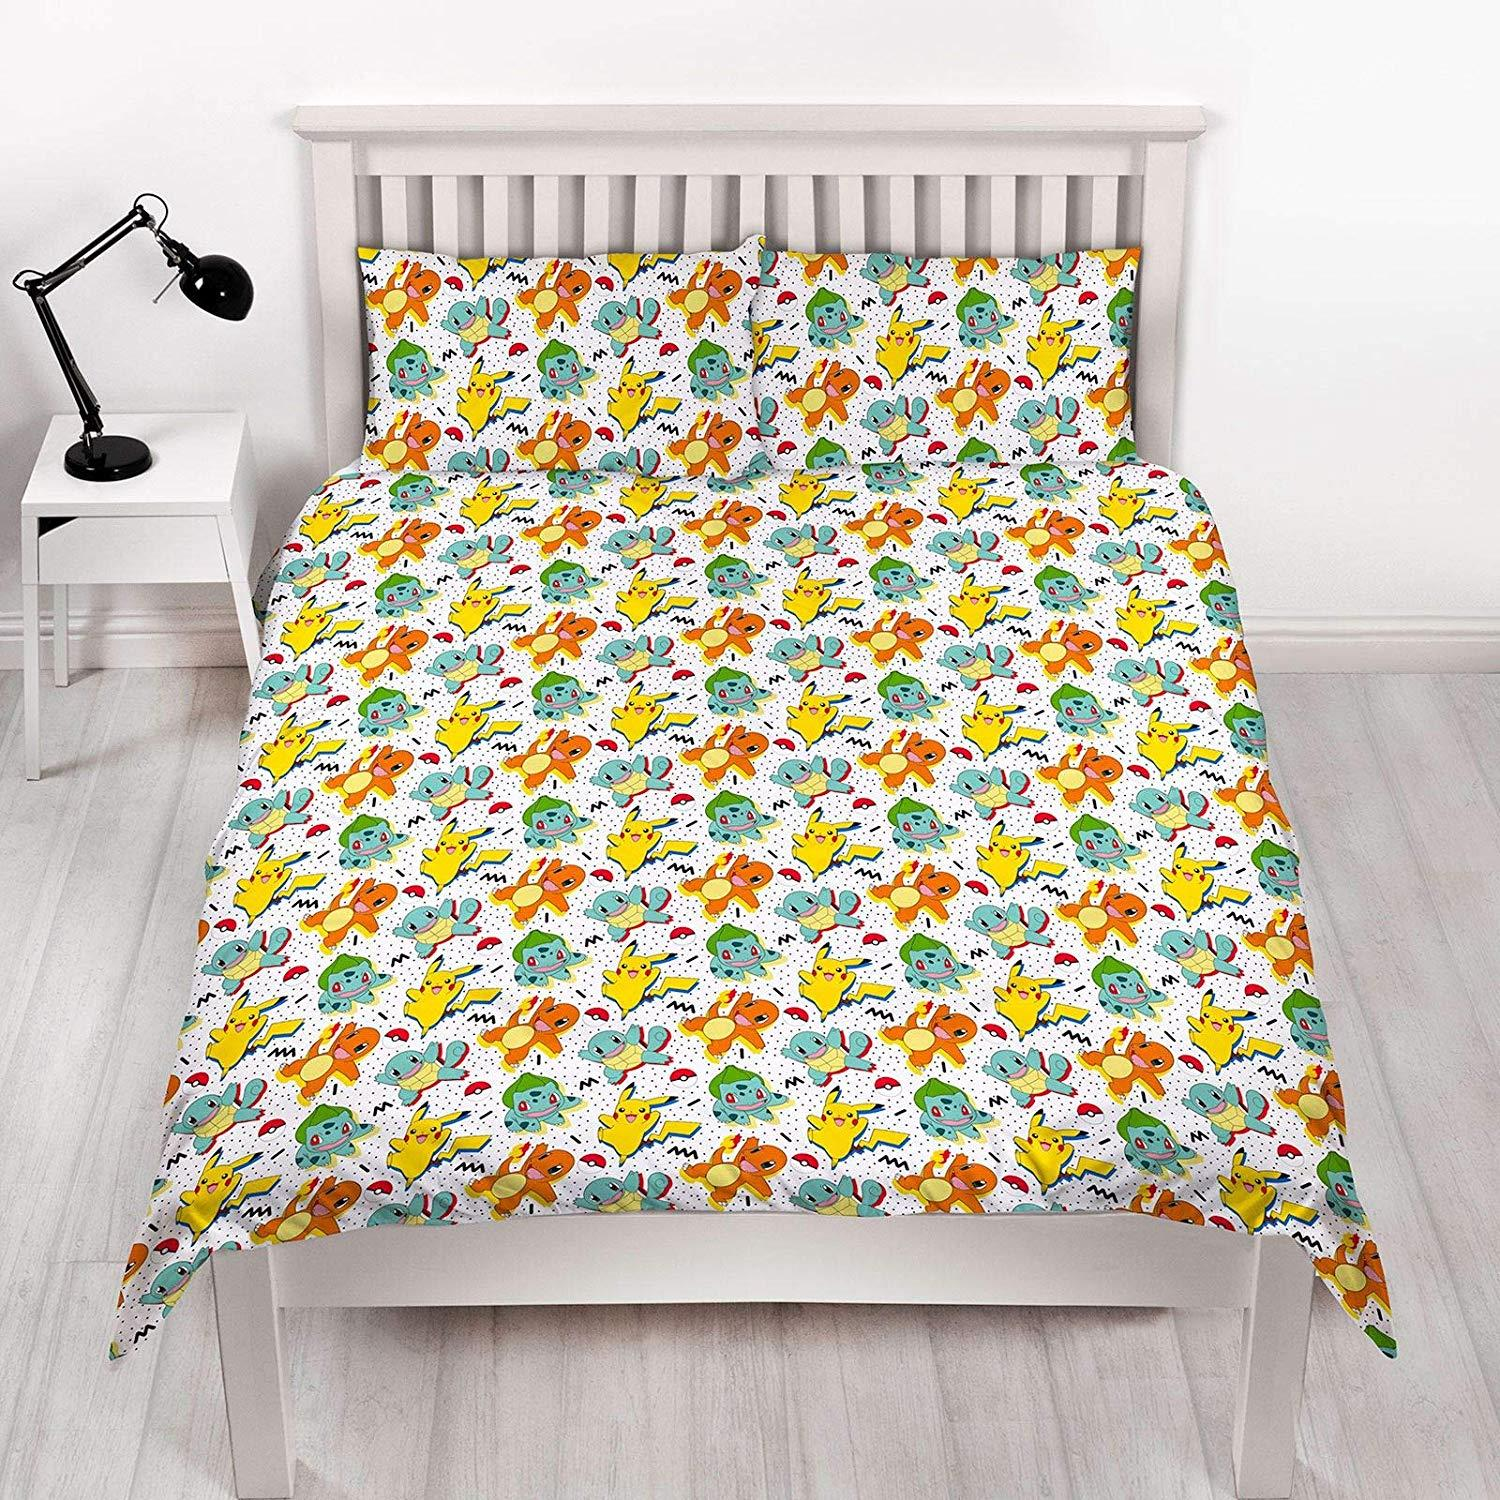 Official-Pokemon-Licensed-Duvet-Covers-Single-Double-Pikachu-Bedding-Gaming thumbnail 25